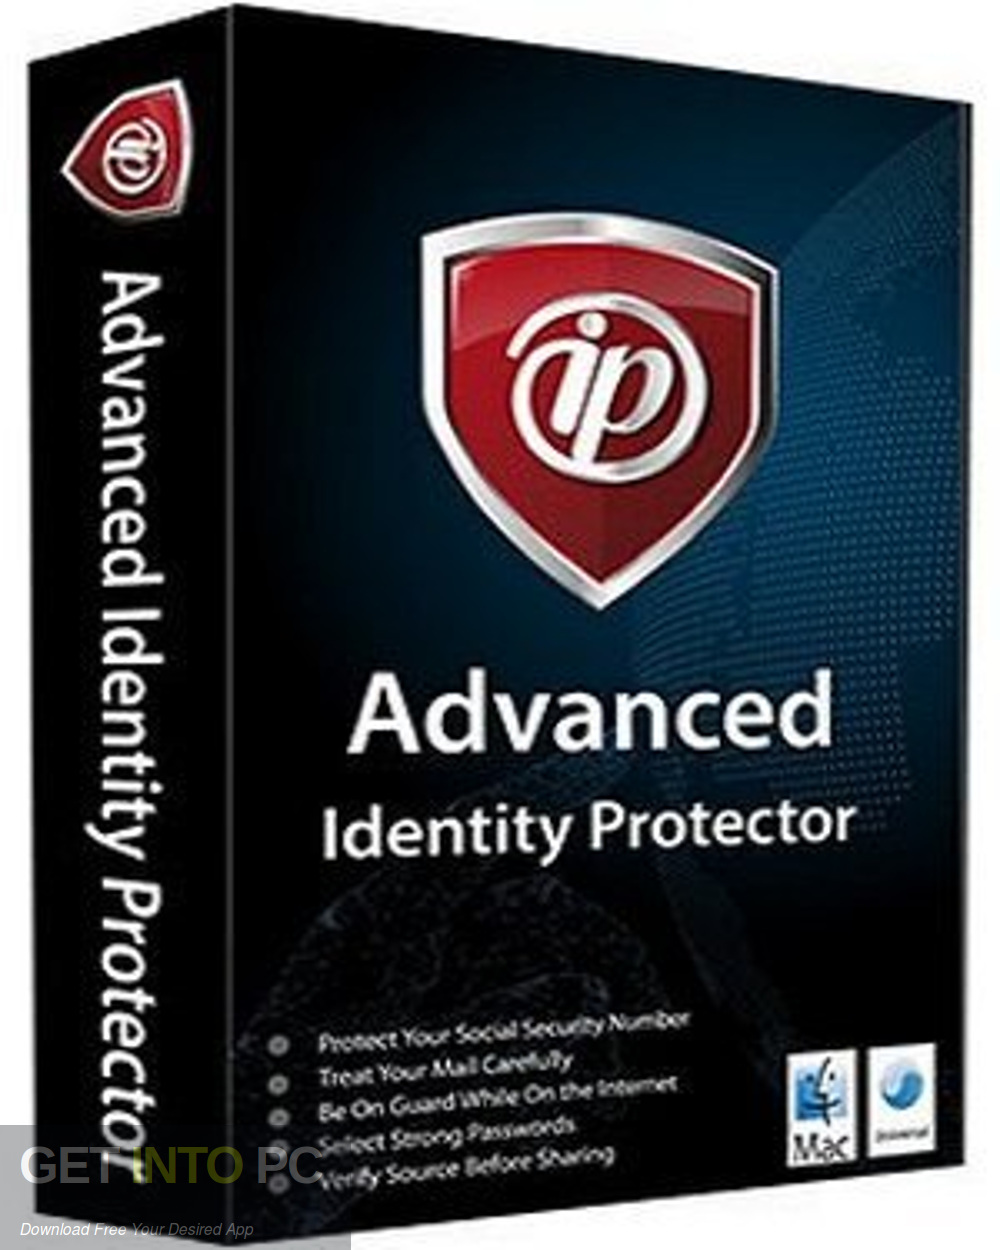 Advanced Identity Protector Free Download-GetintoPC.com